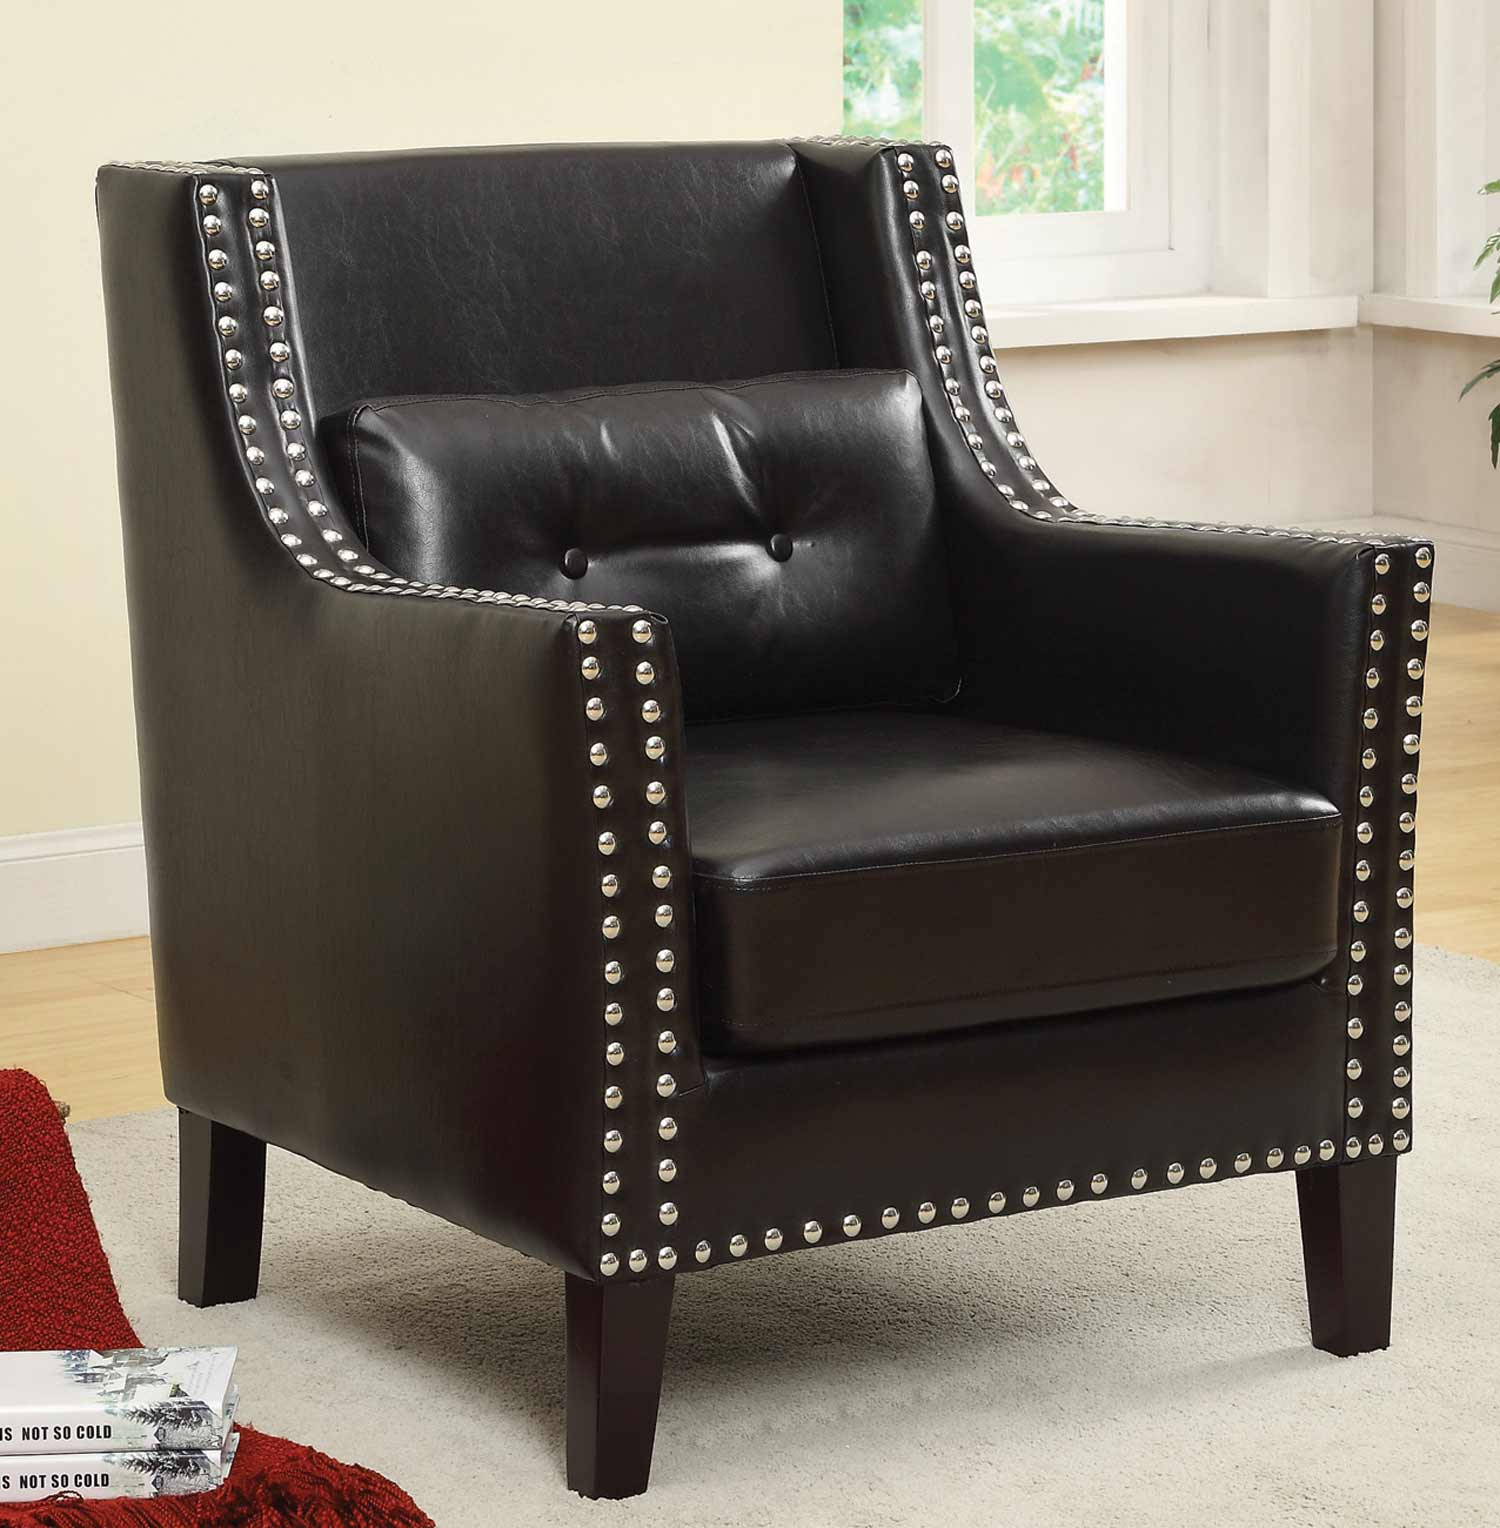 Coaster 902224 Accent Chair - Black